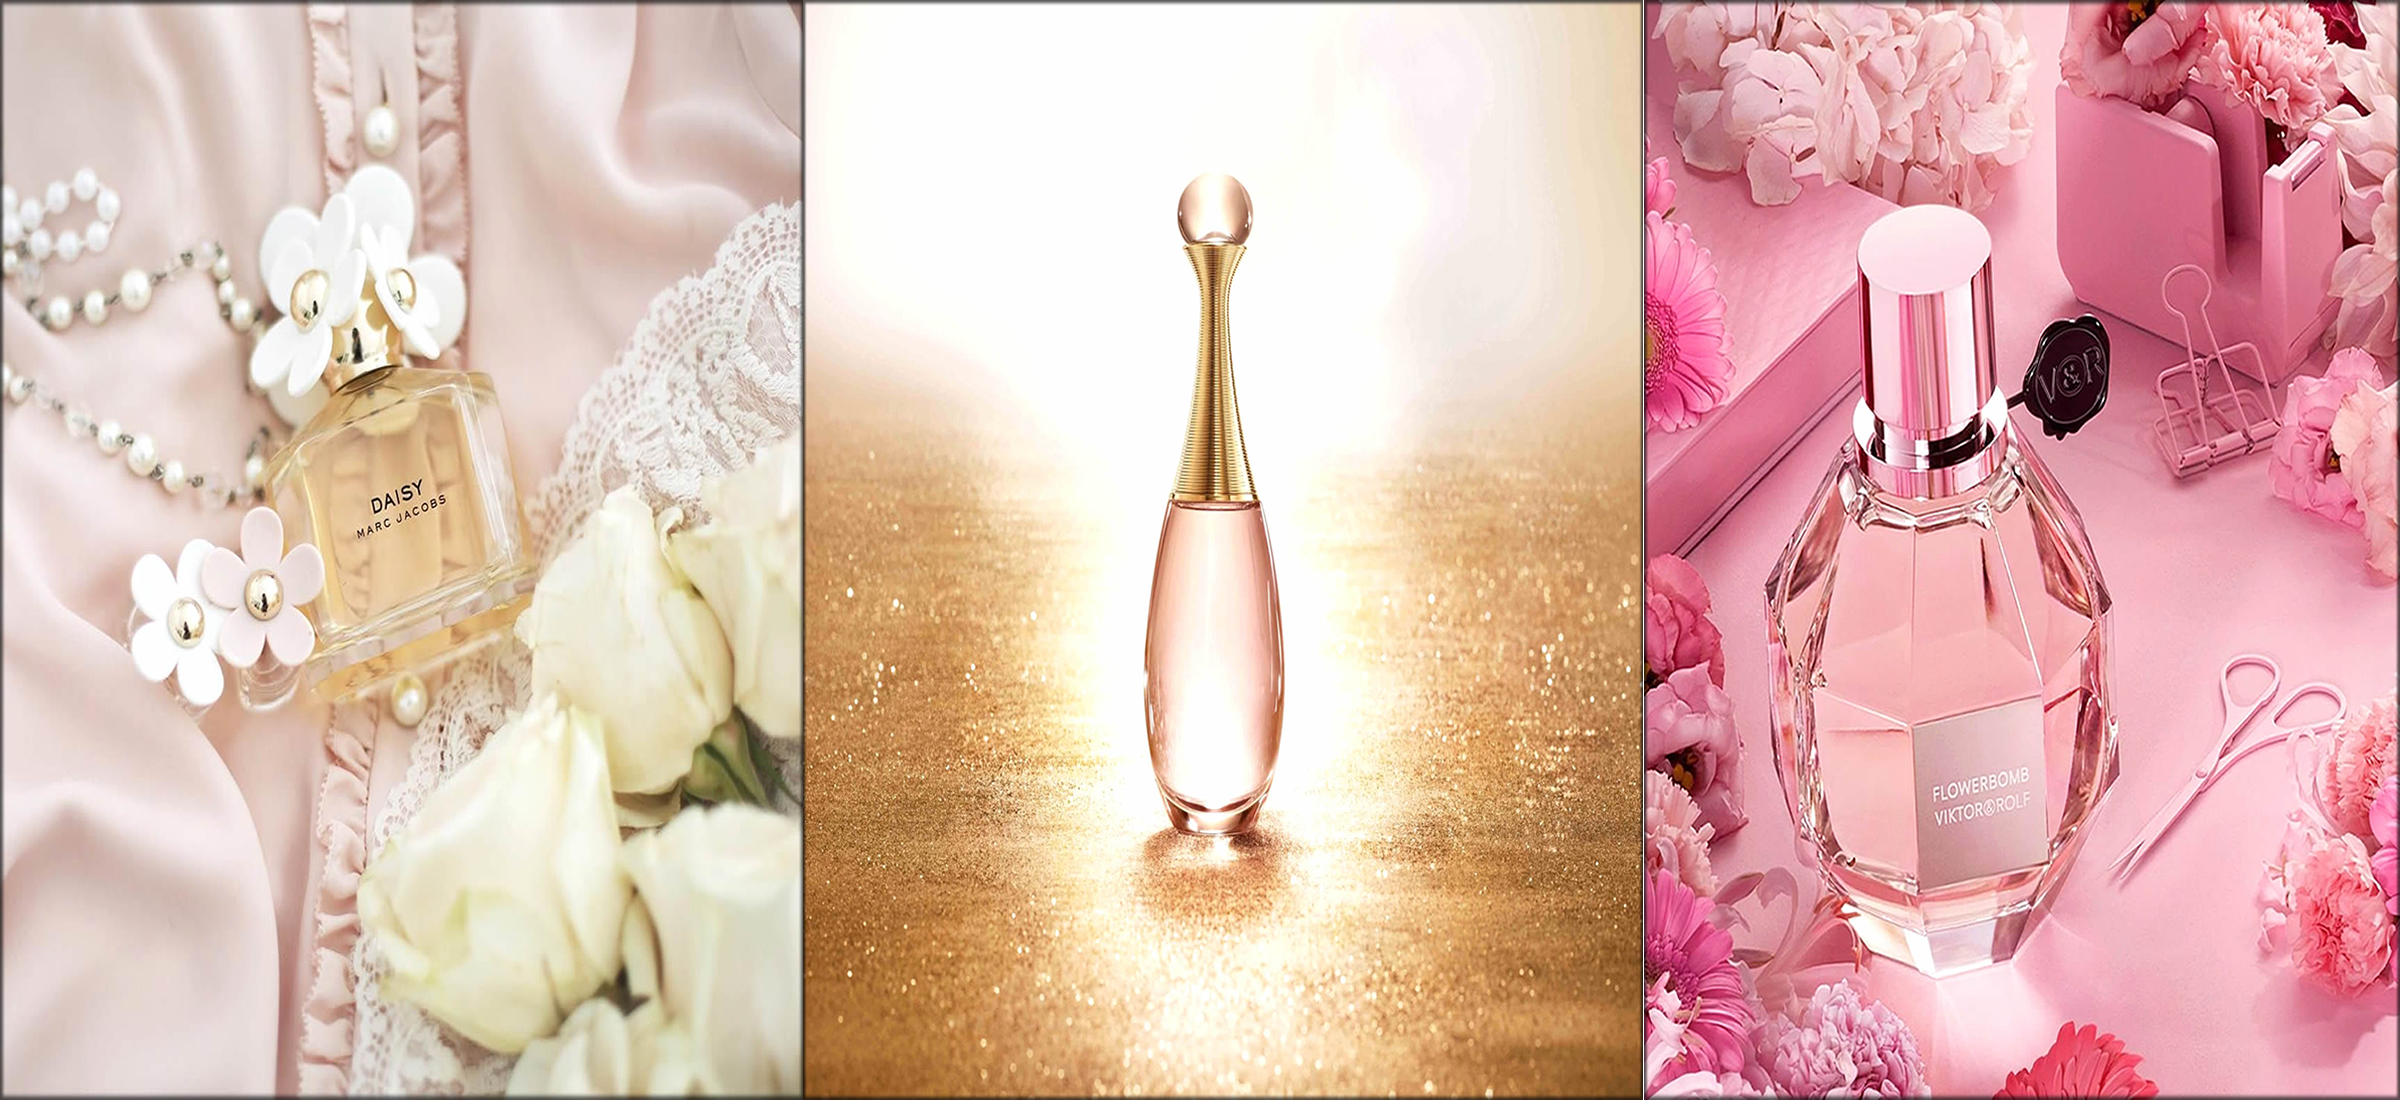 Best Perfumes For Women With Pleasant & Long Lasting Scent